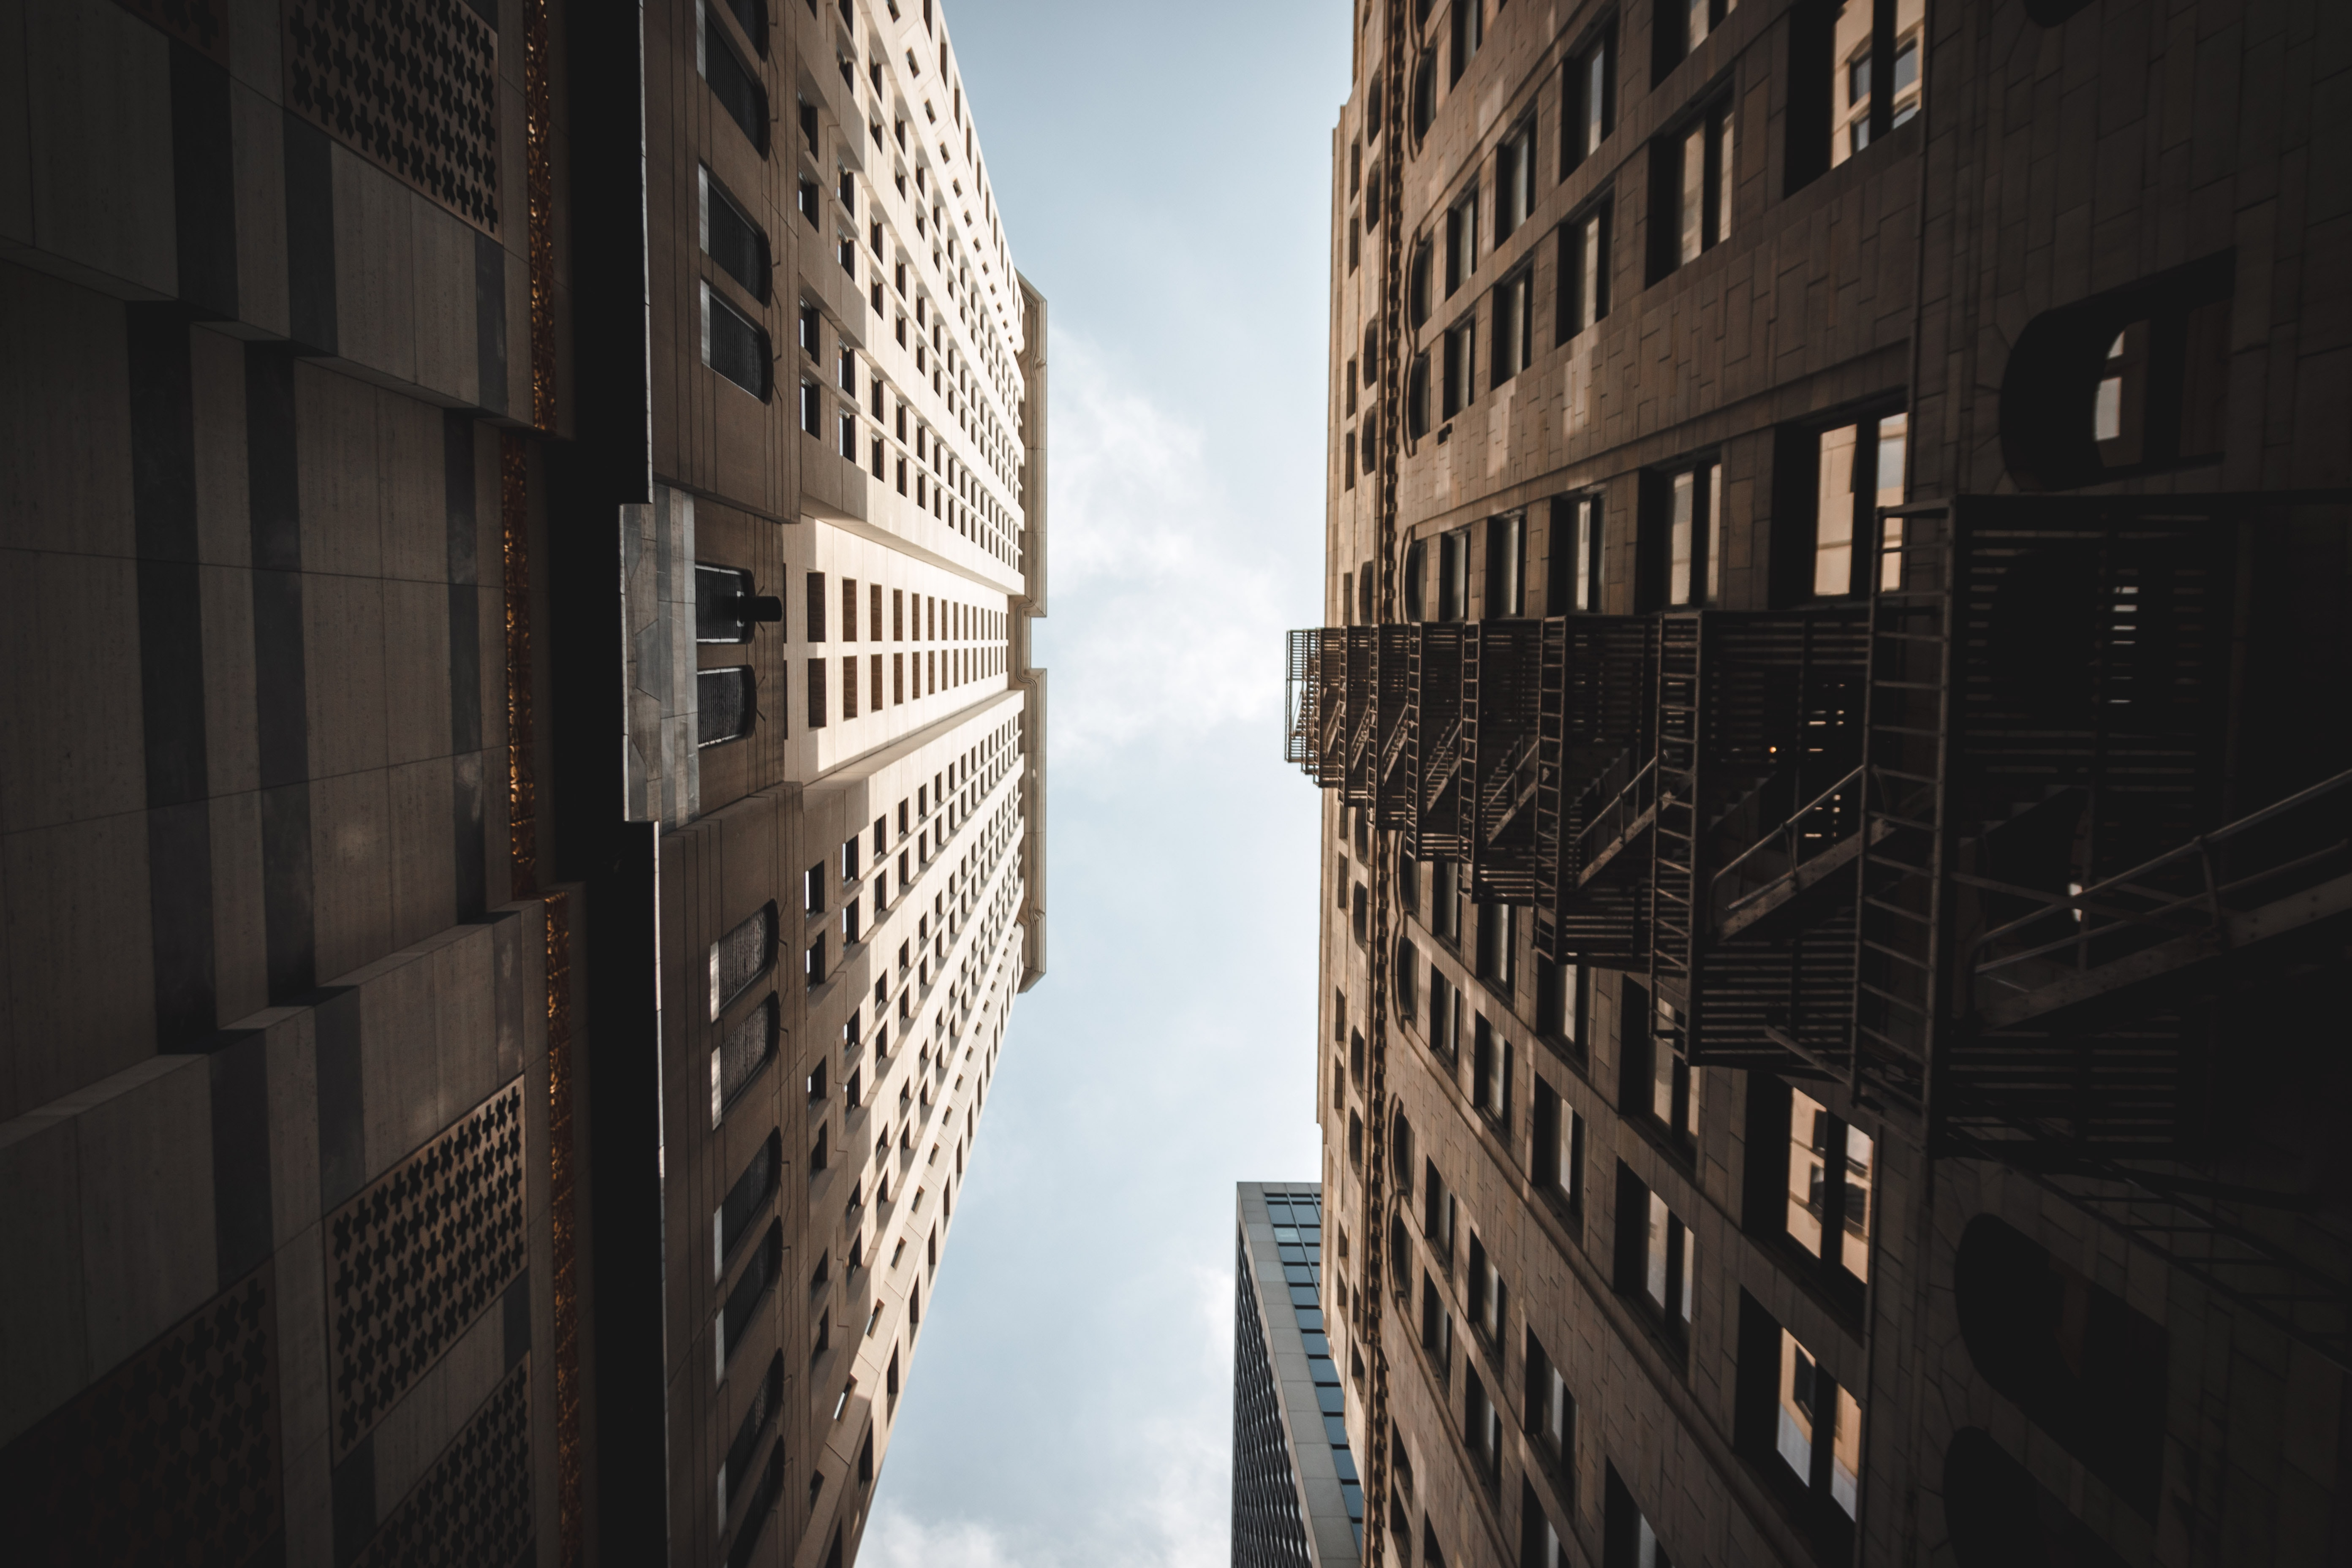 architectural photography of two high-rise buildings